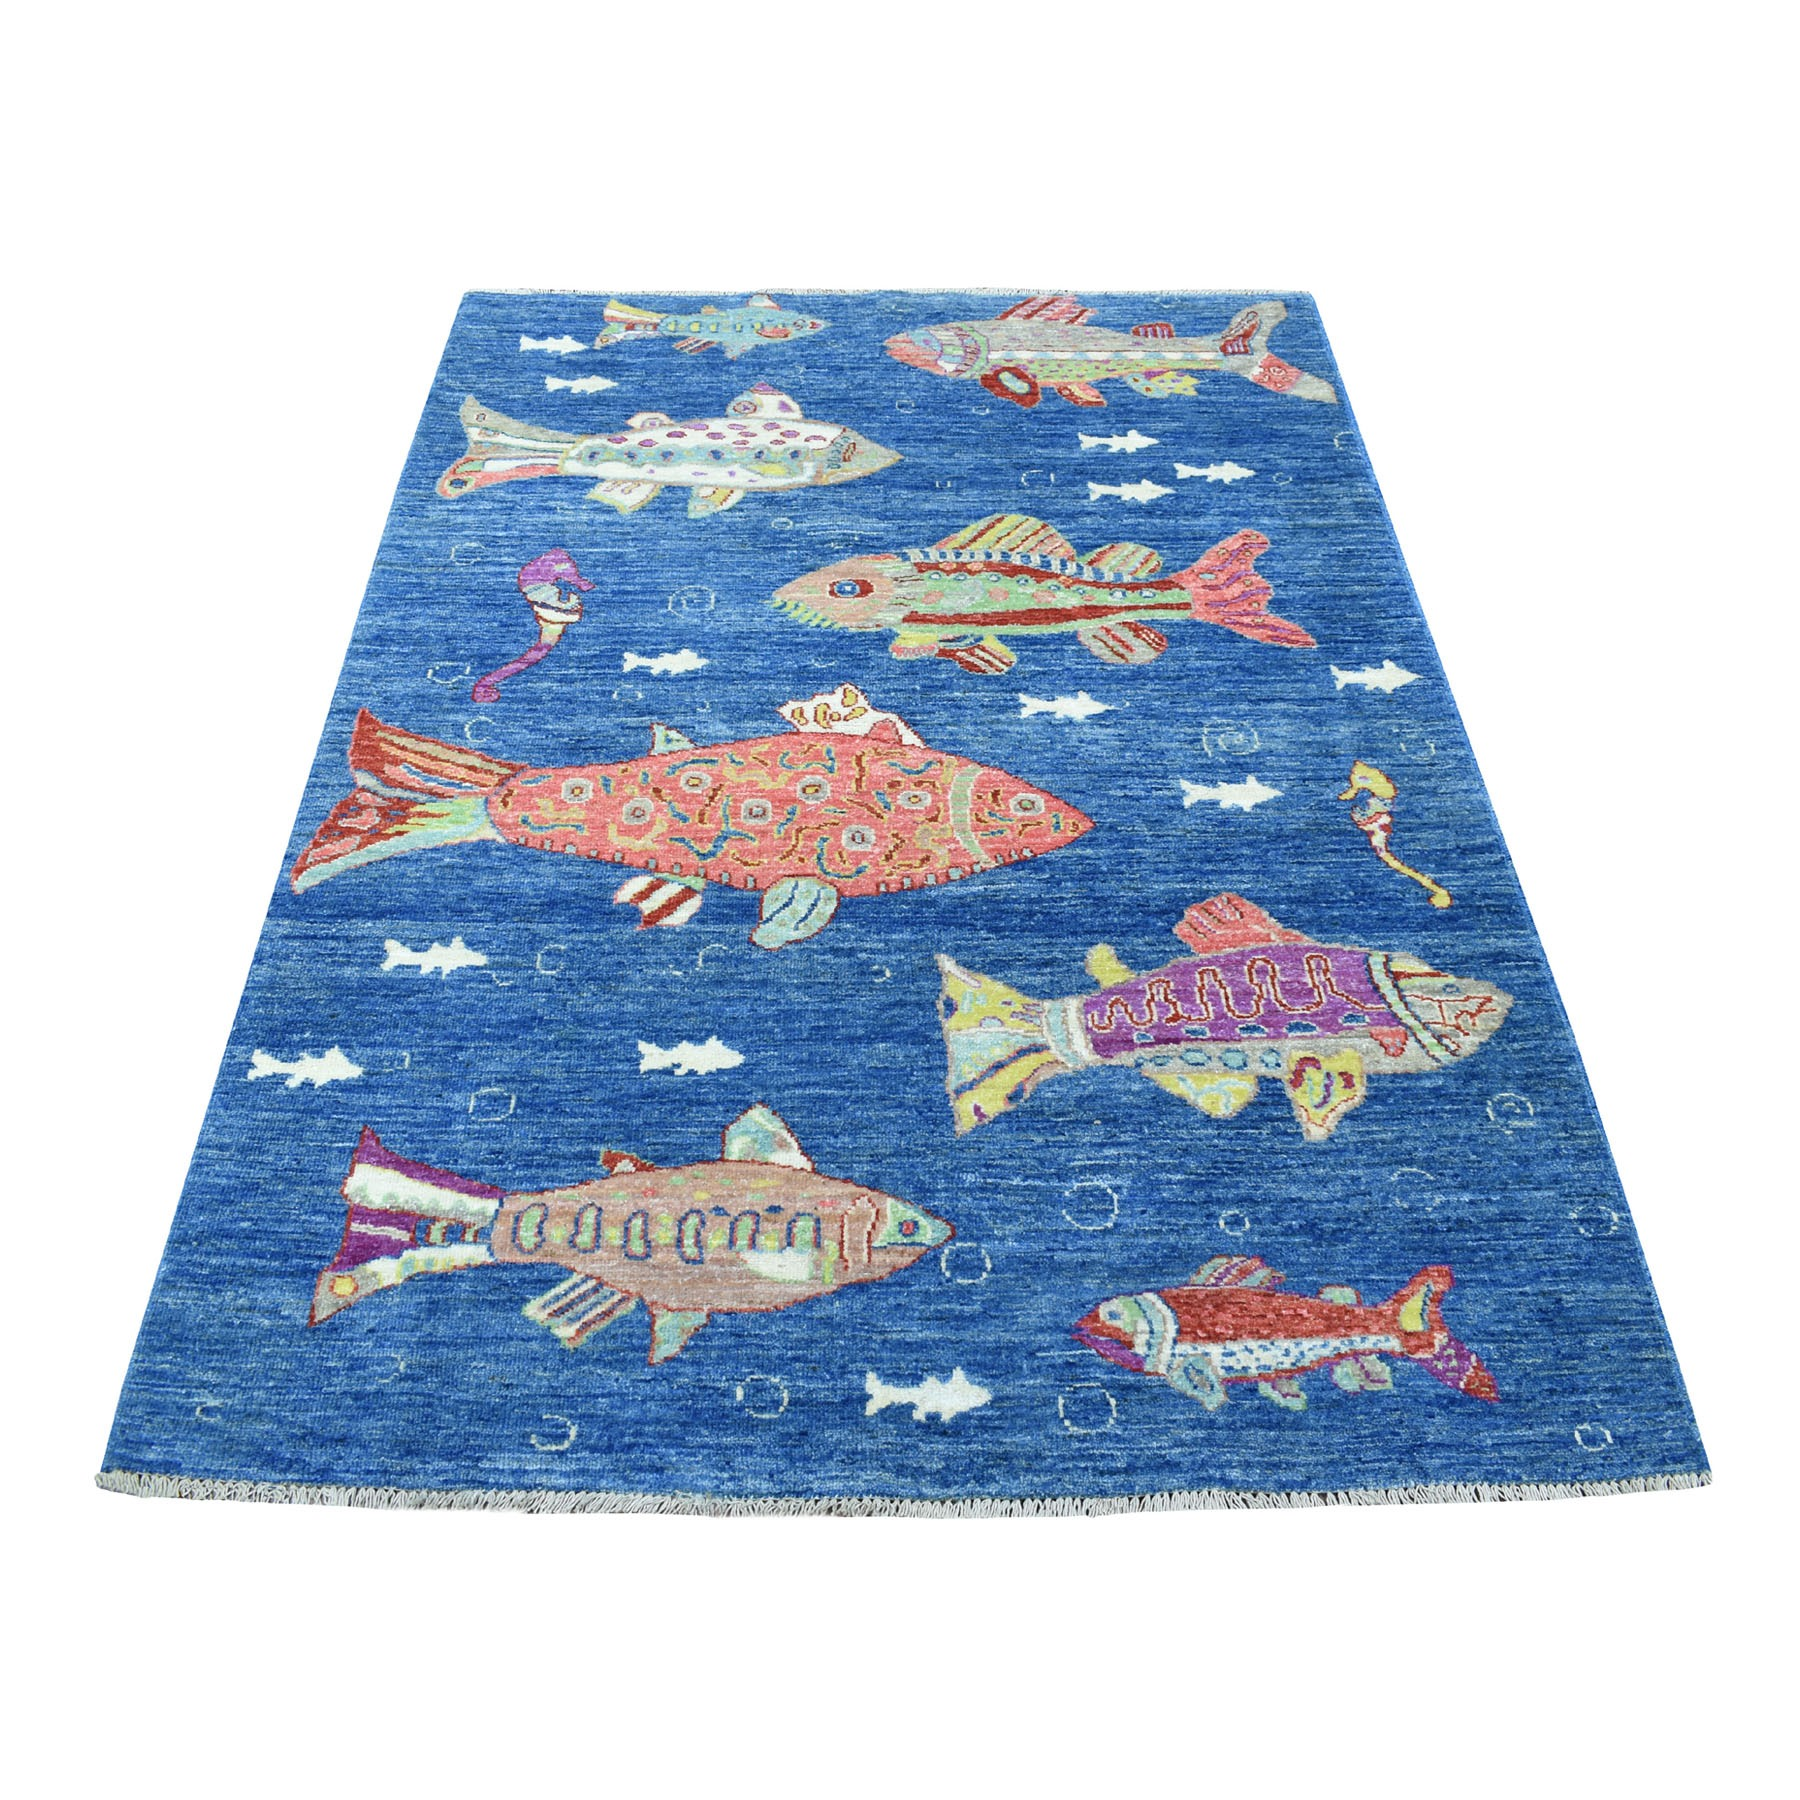 4'x6' Oceanic Fish Design Afghan Peshawar Hand Knotted Pure Wool Oriental Rug